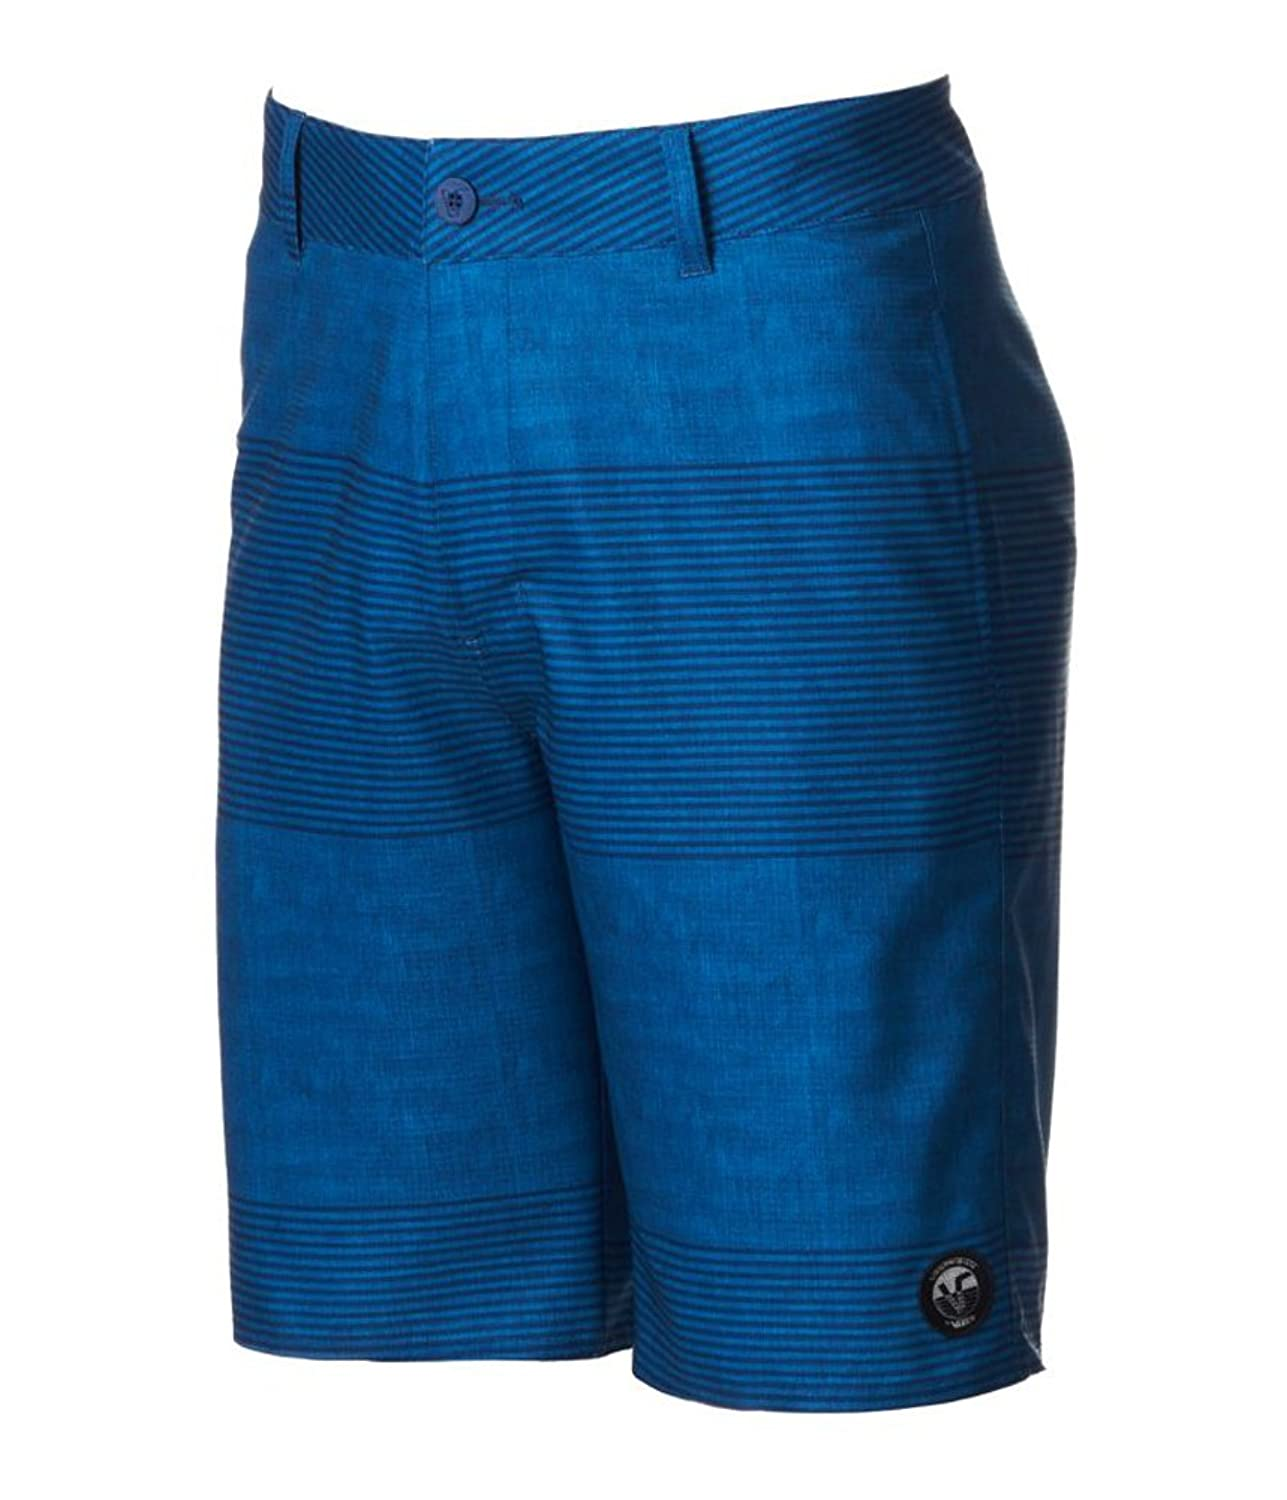 Vans Mens Rowler Vanphibian Swim Bottom Board Shorts